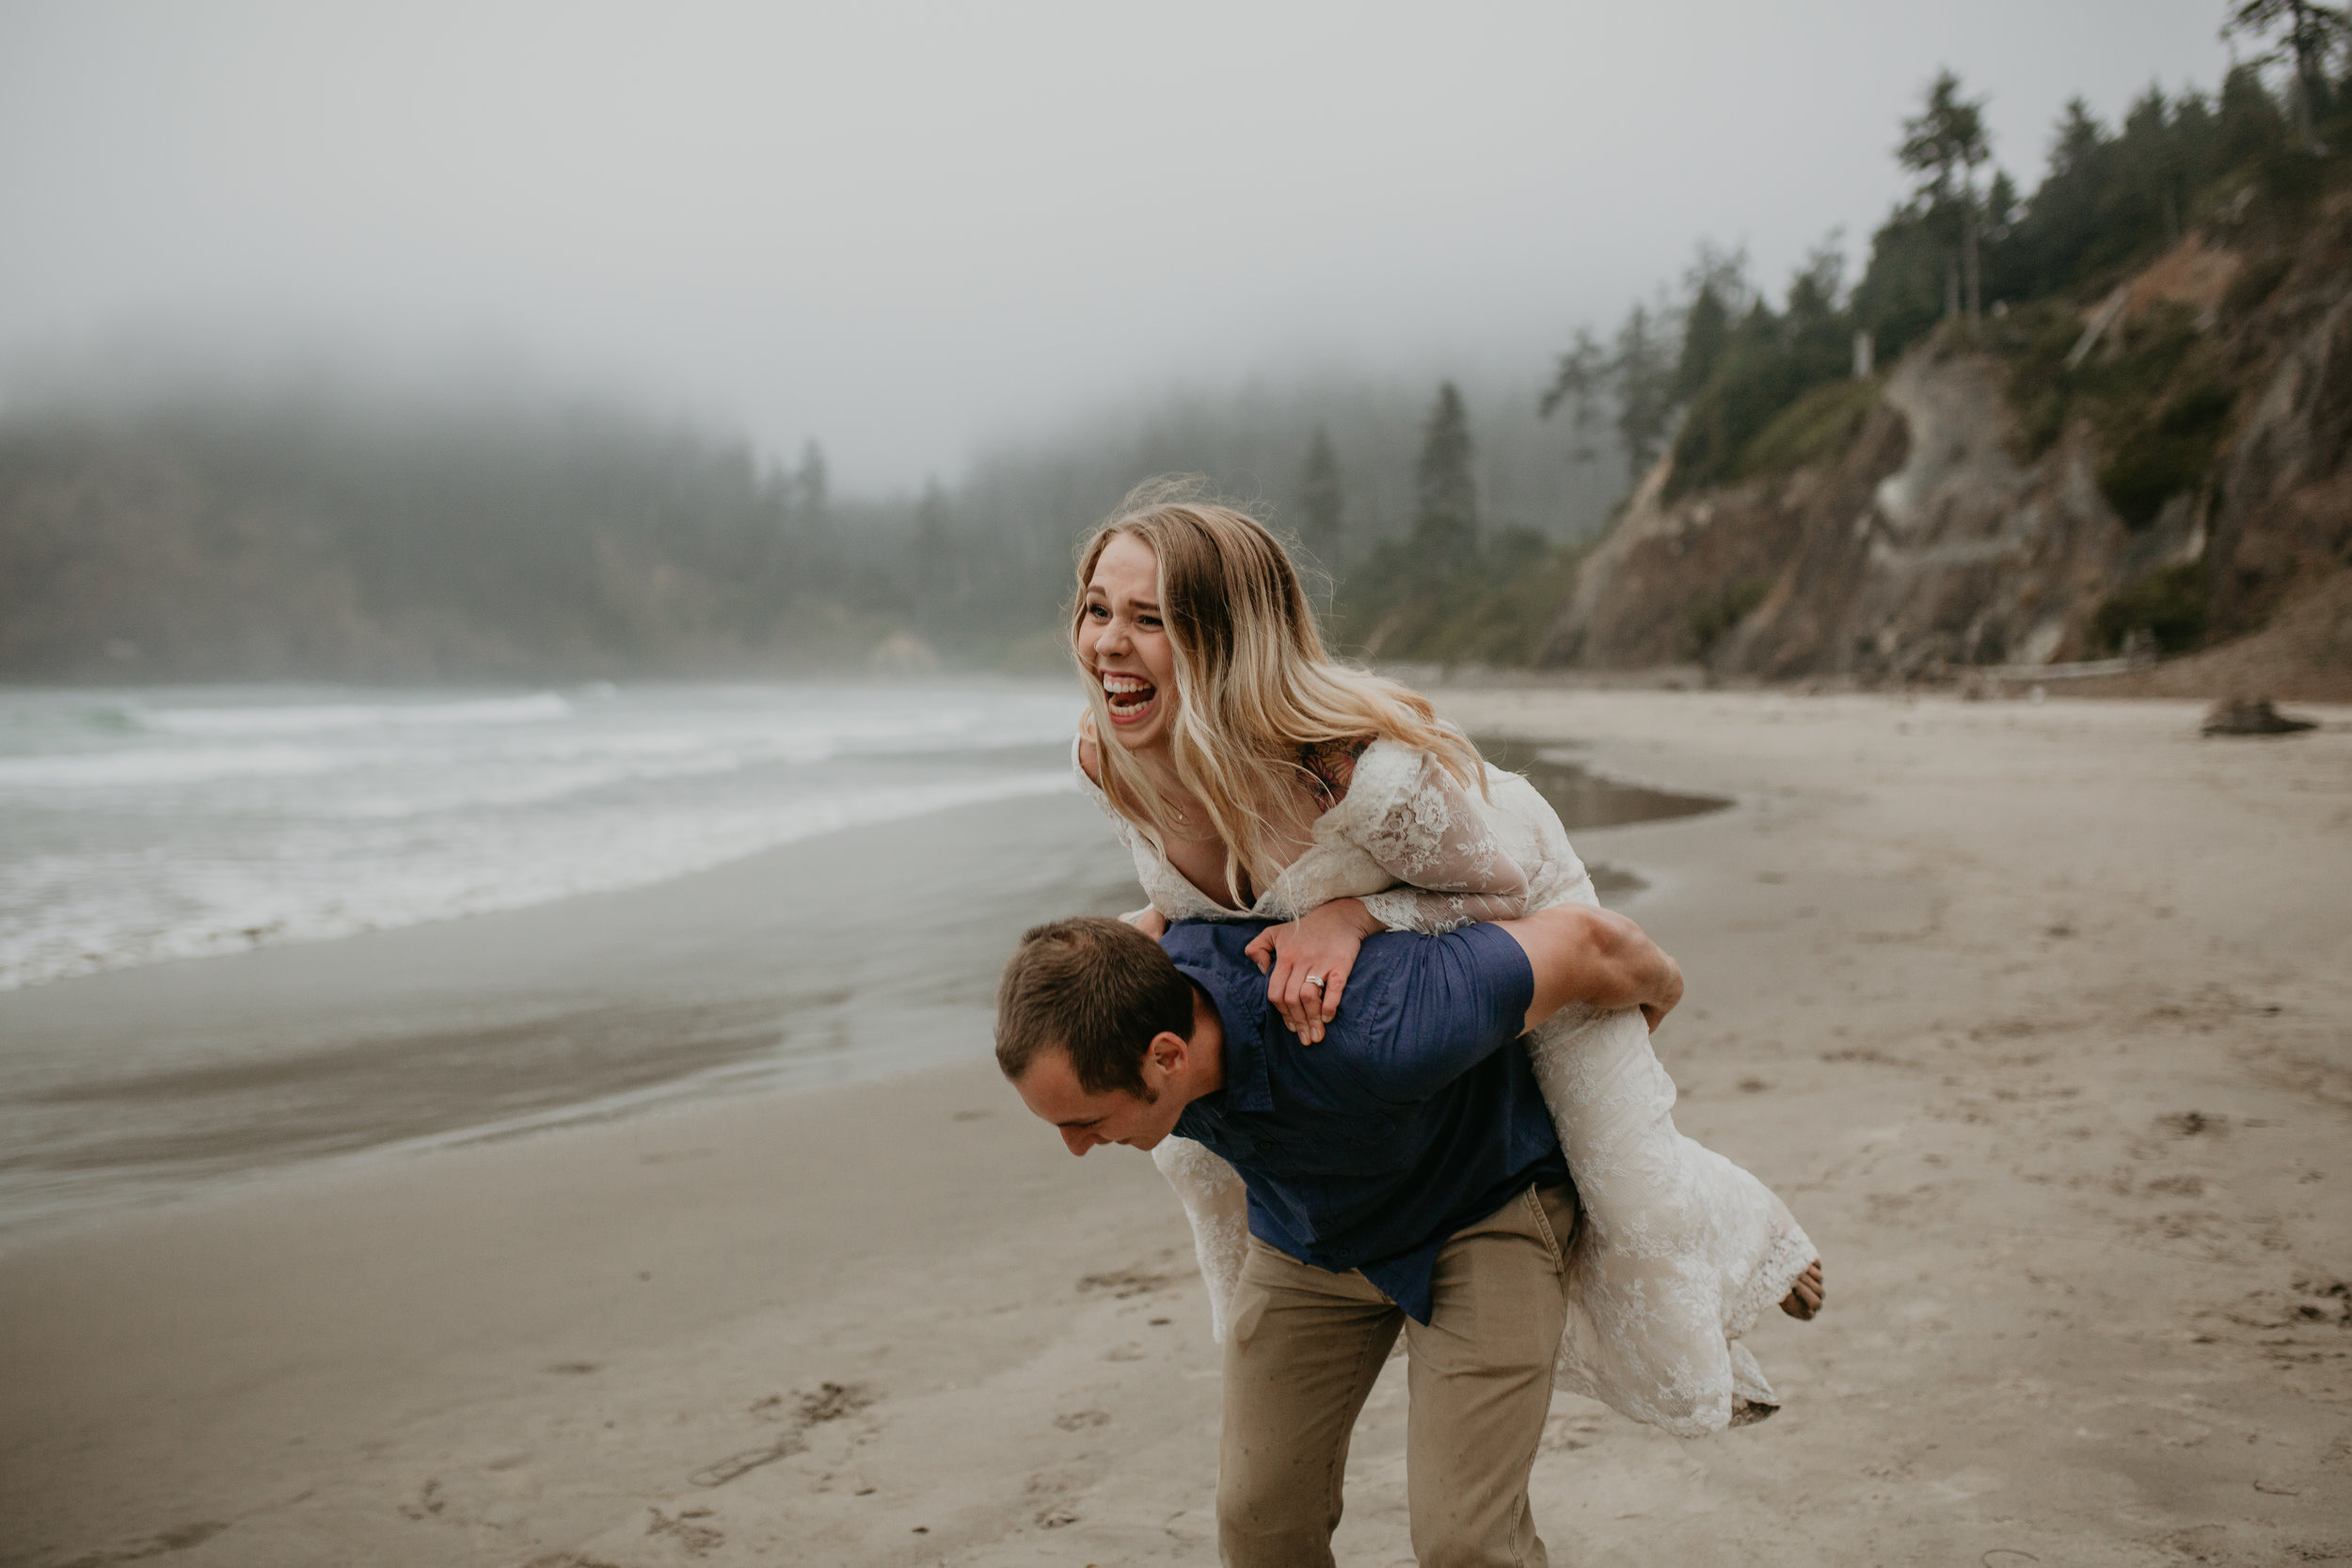 nicole-daacke-photography-oregon-coast-cannon-beach-indian-beach-ecola-state-park-adventurous-bridal-session-elopement-wedding-intimate-session-foggy-wedding-photographer-16.jpg